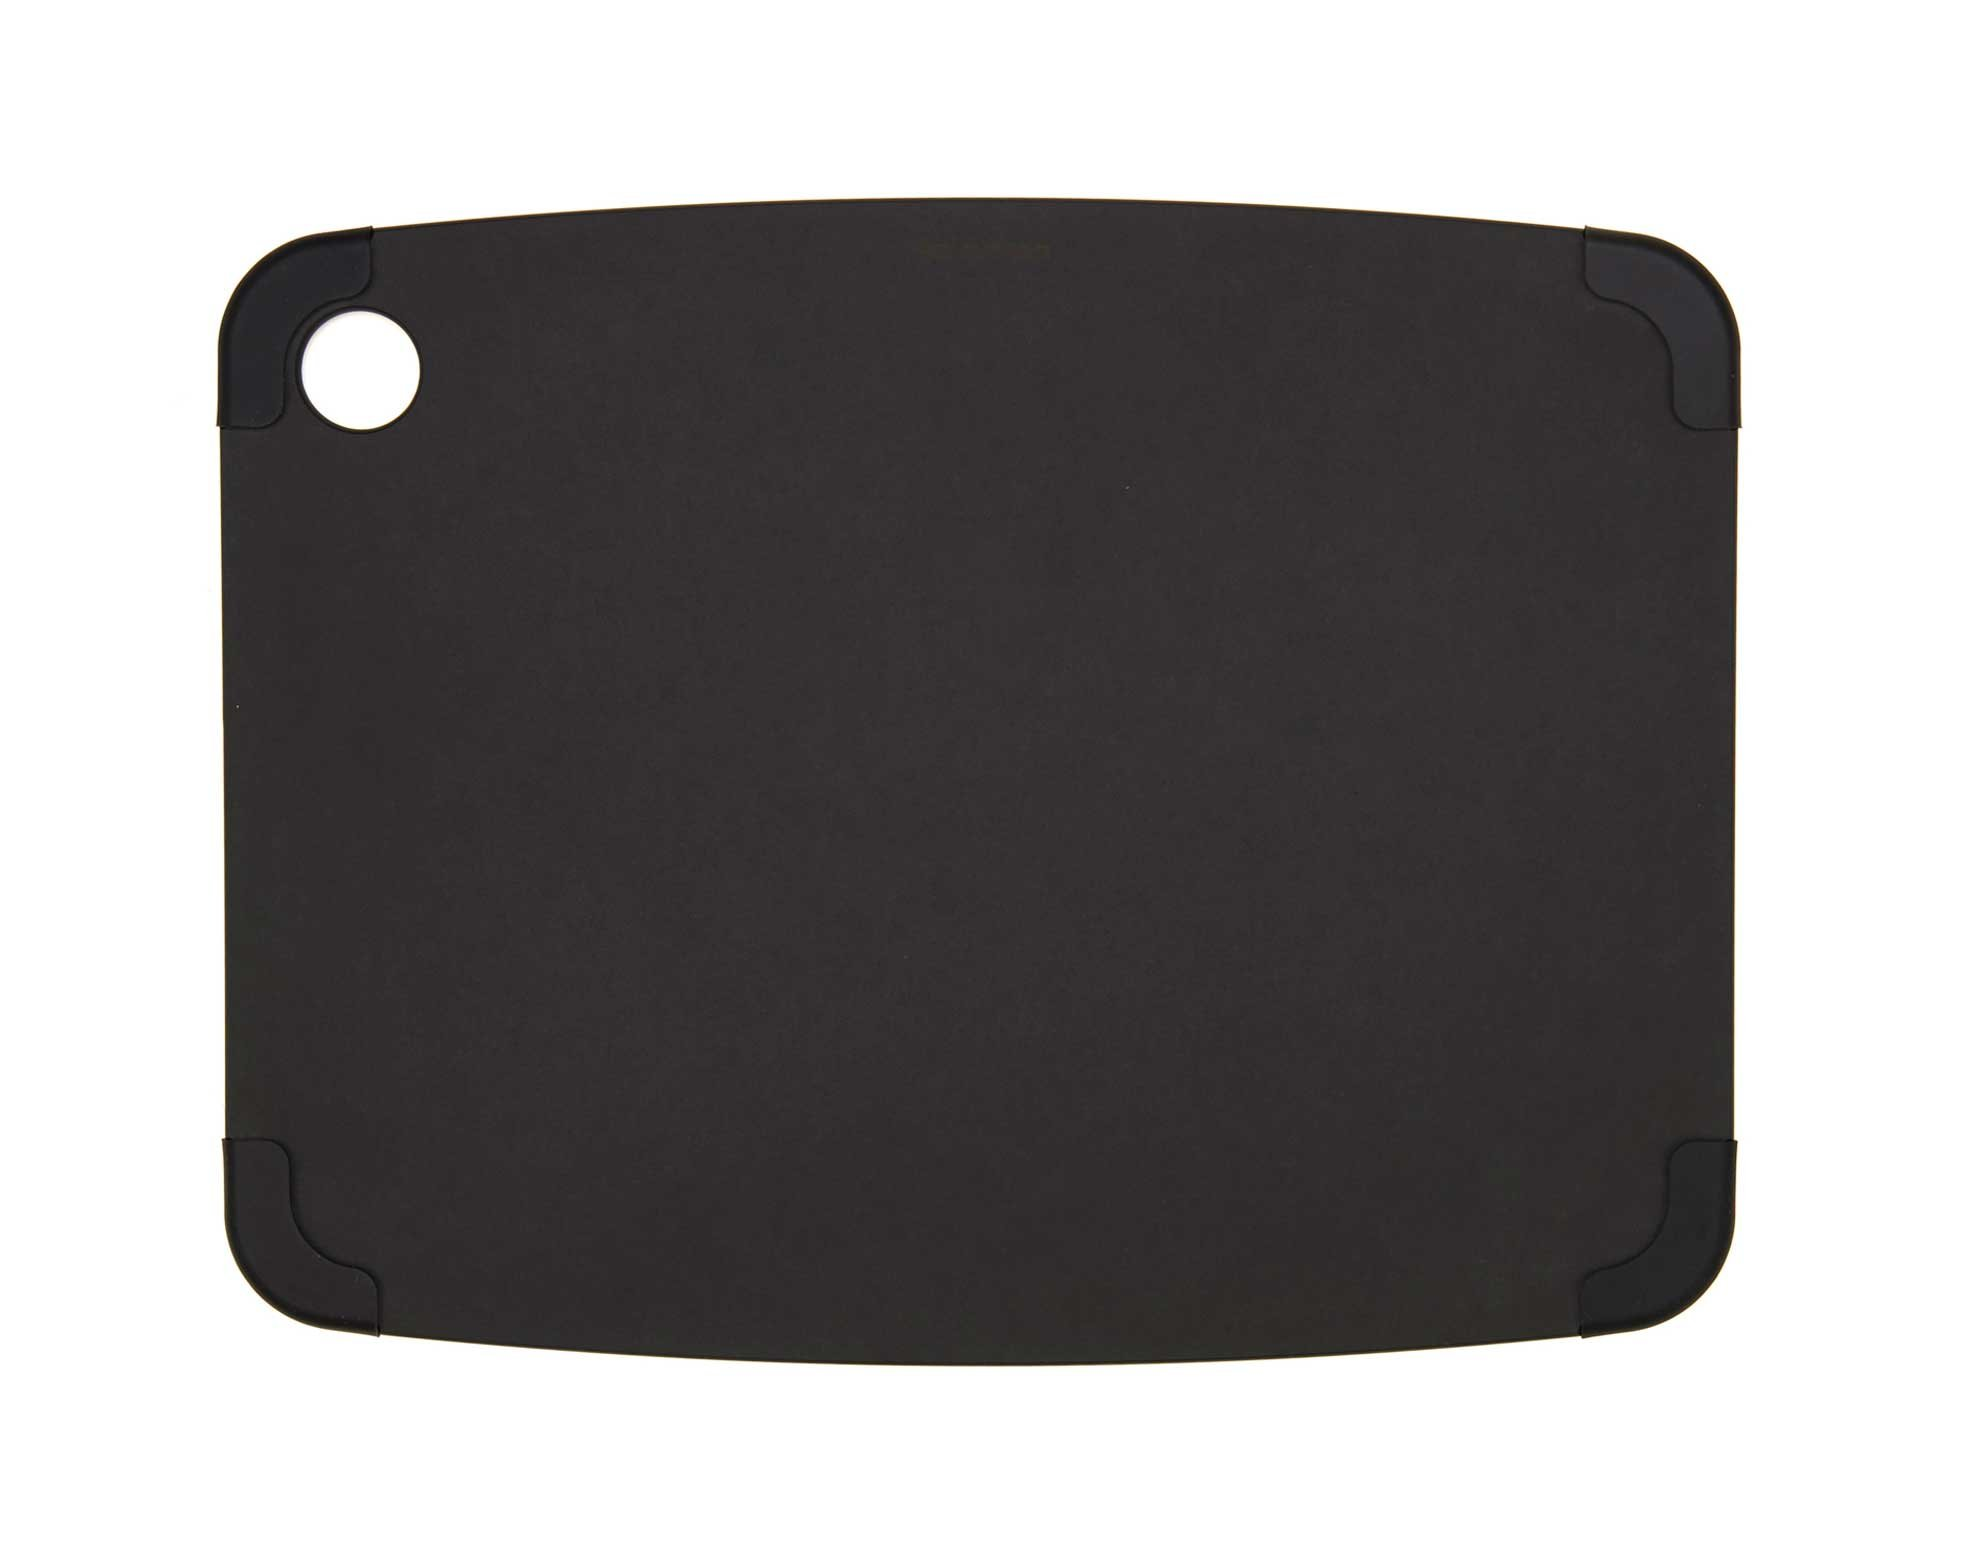 Epicurean Non-Slip Series Cutting Board, 14.5-Inch by 11.25-Inch, Slate/Slate